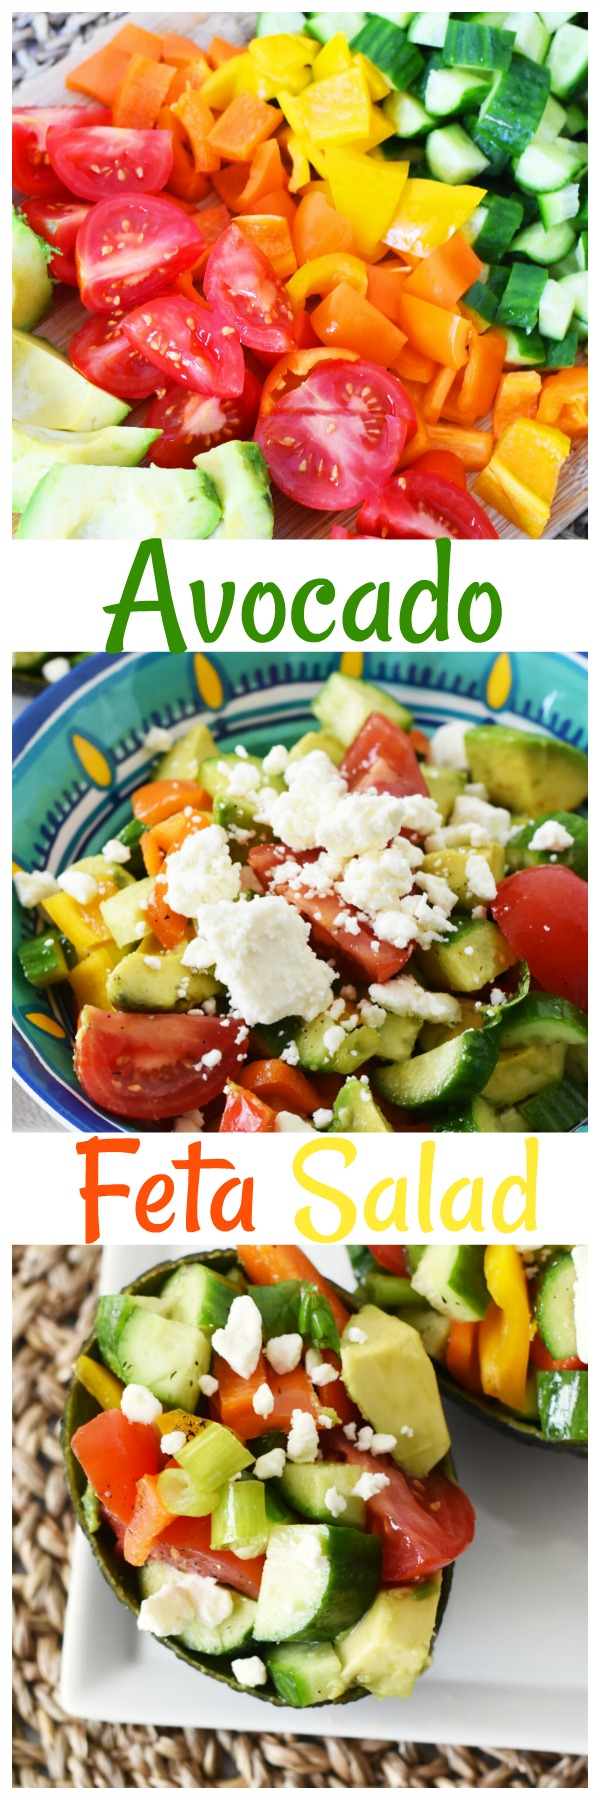 Avocado Feta Salad- A healthy and easy to prepare summer salad that can be prepared in minutes. Store it in an airtight container for 2-3 days of meals! AD